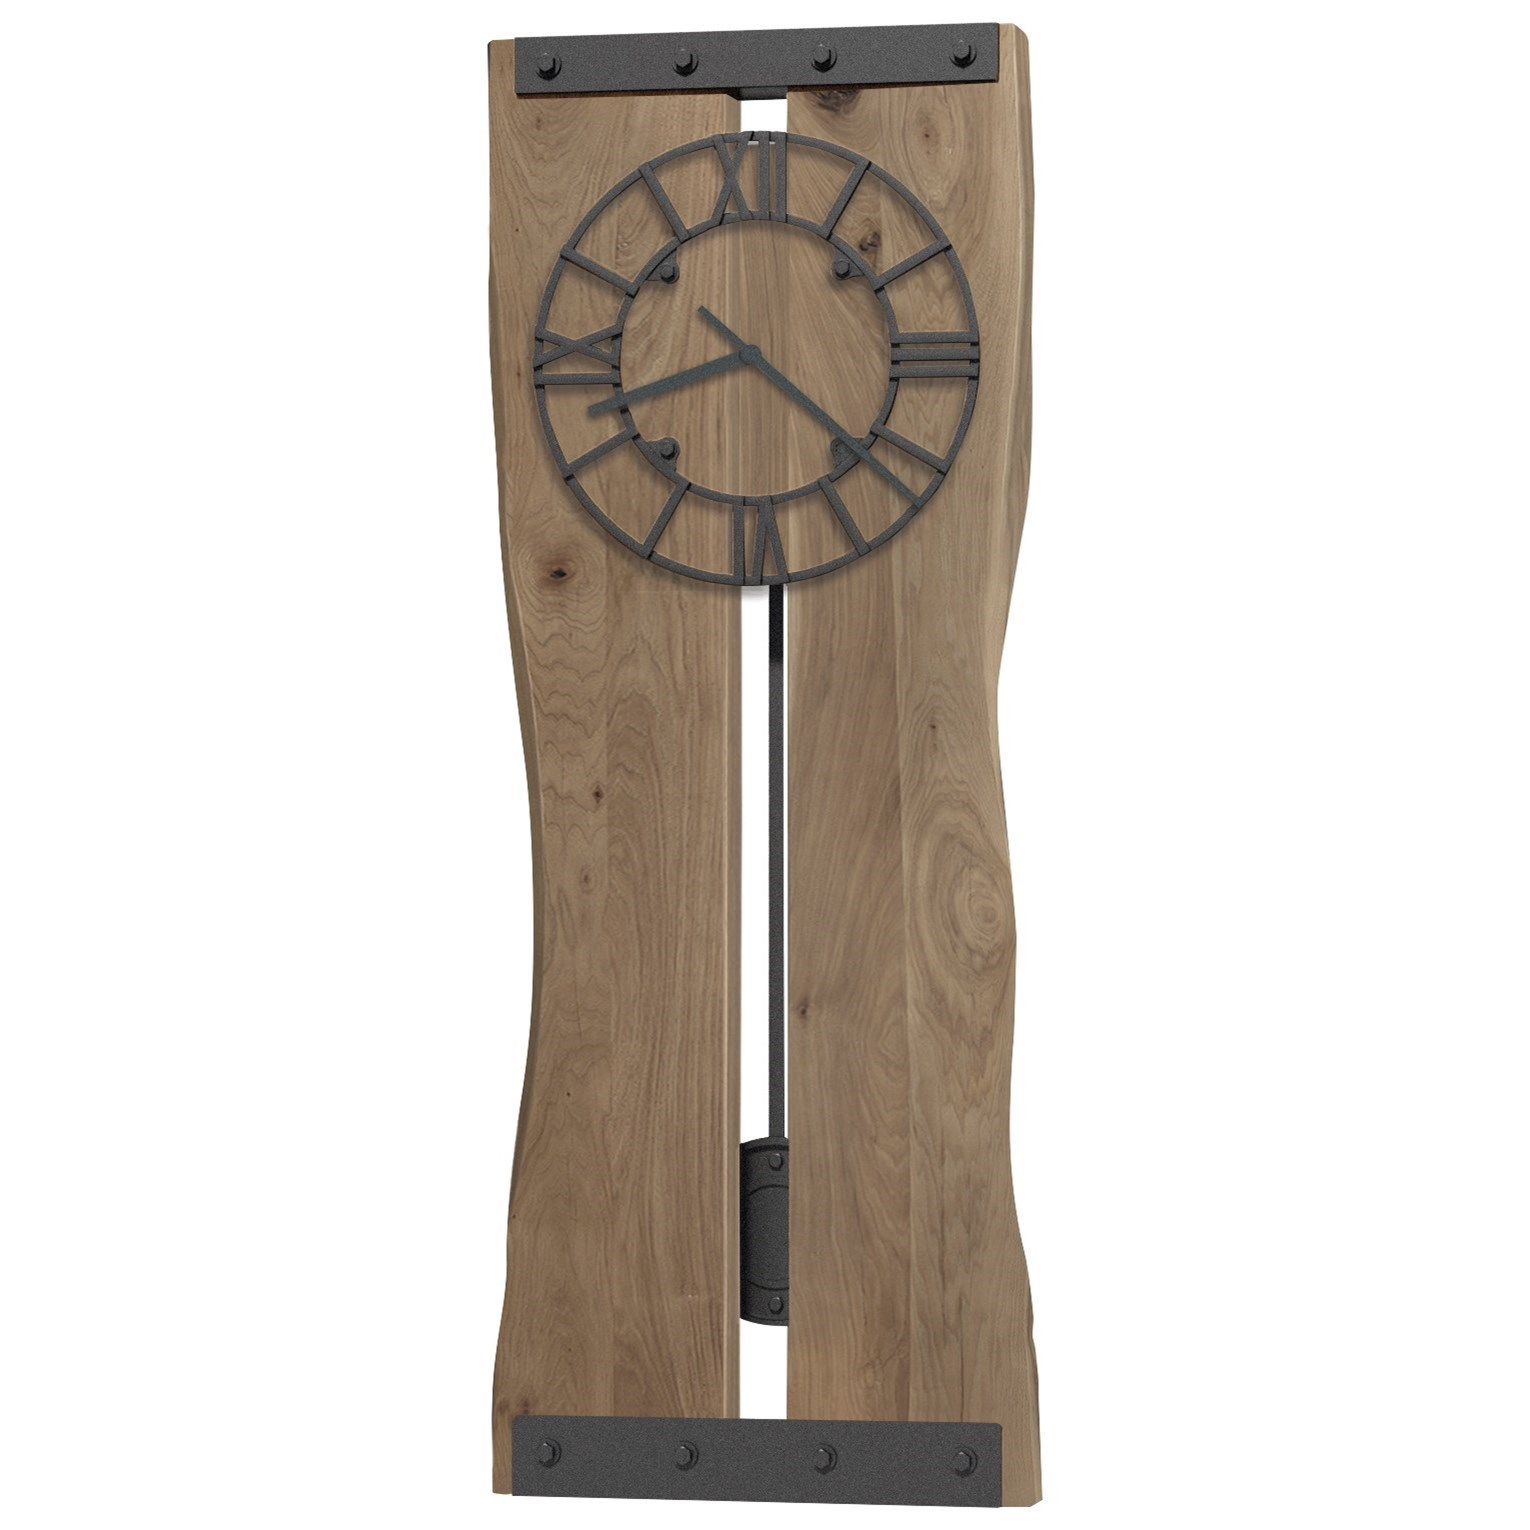 620 Zeno Wall Clock by Howard Miller at Stuckey Furniture